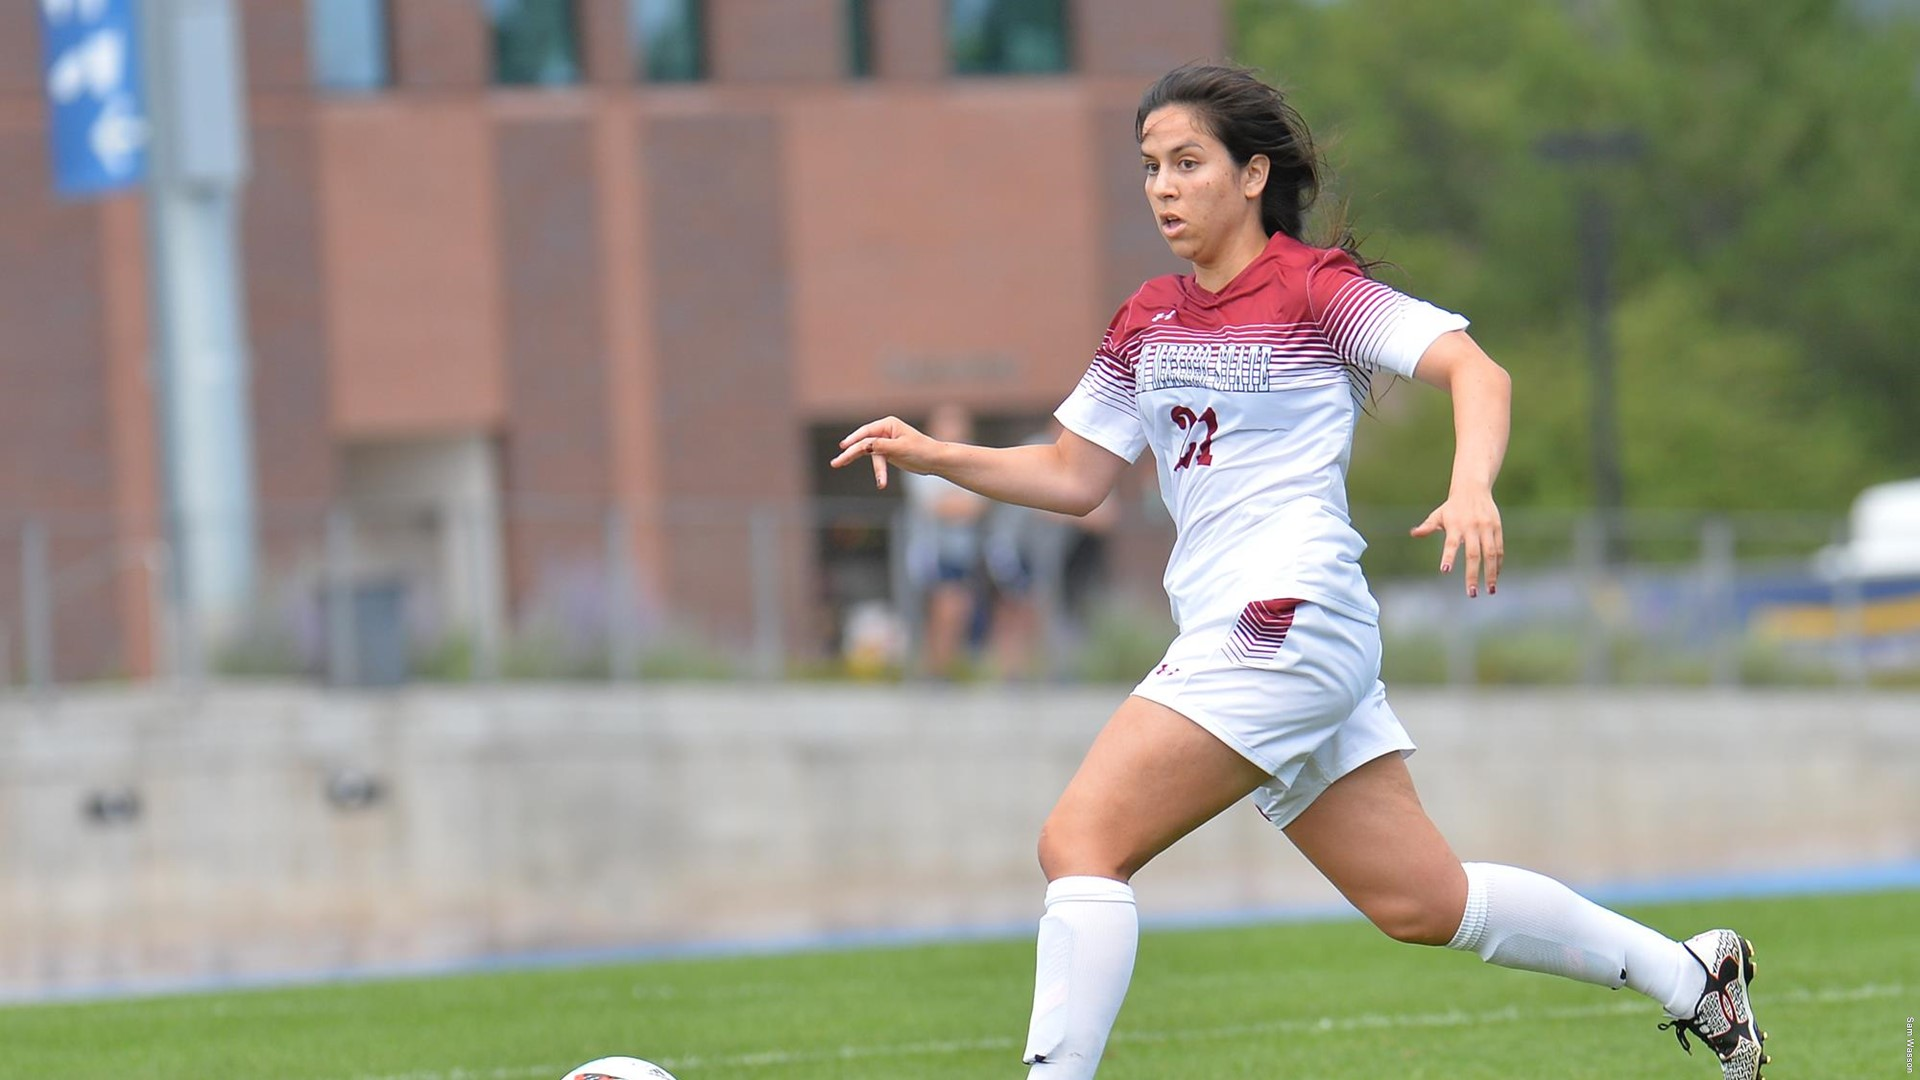 Holly Abdelkader, who scored the first goal of the season for the Lady Aggies.